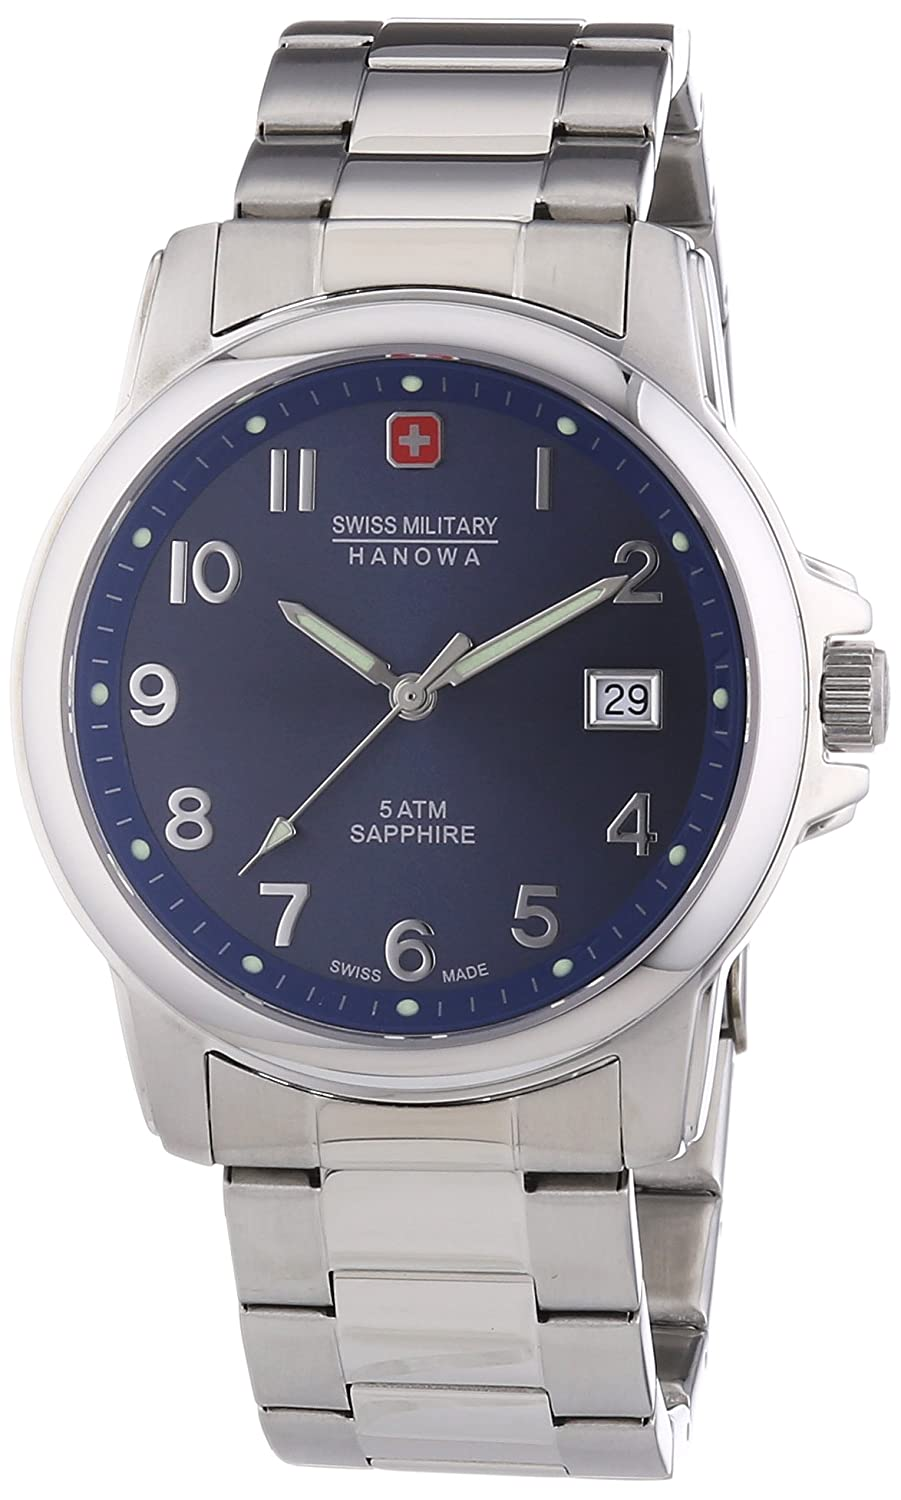 Swiss Military Hanowa Herren-Armbanduhr Analog Quarz 06-5231.04.003